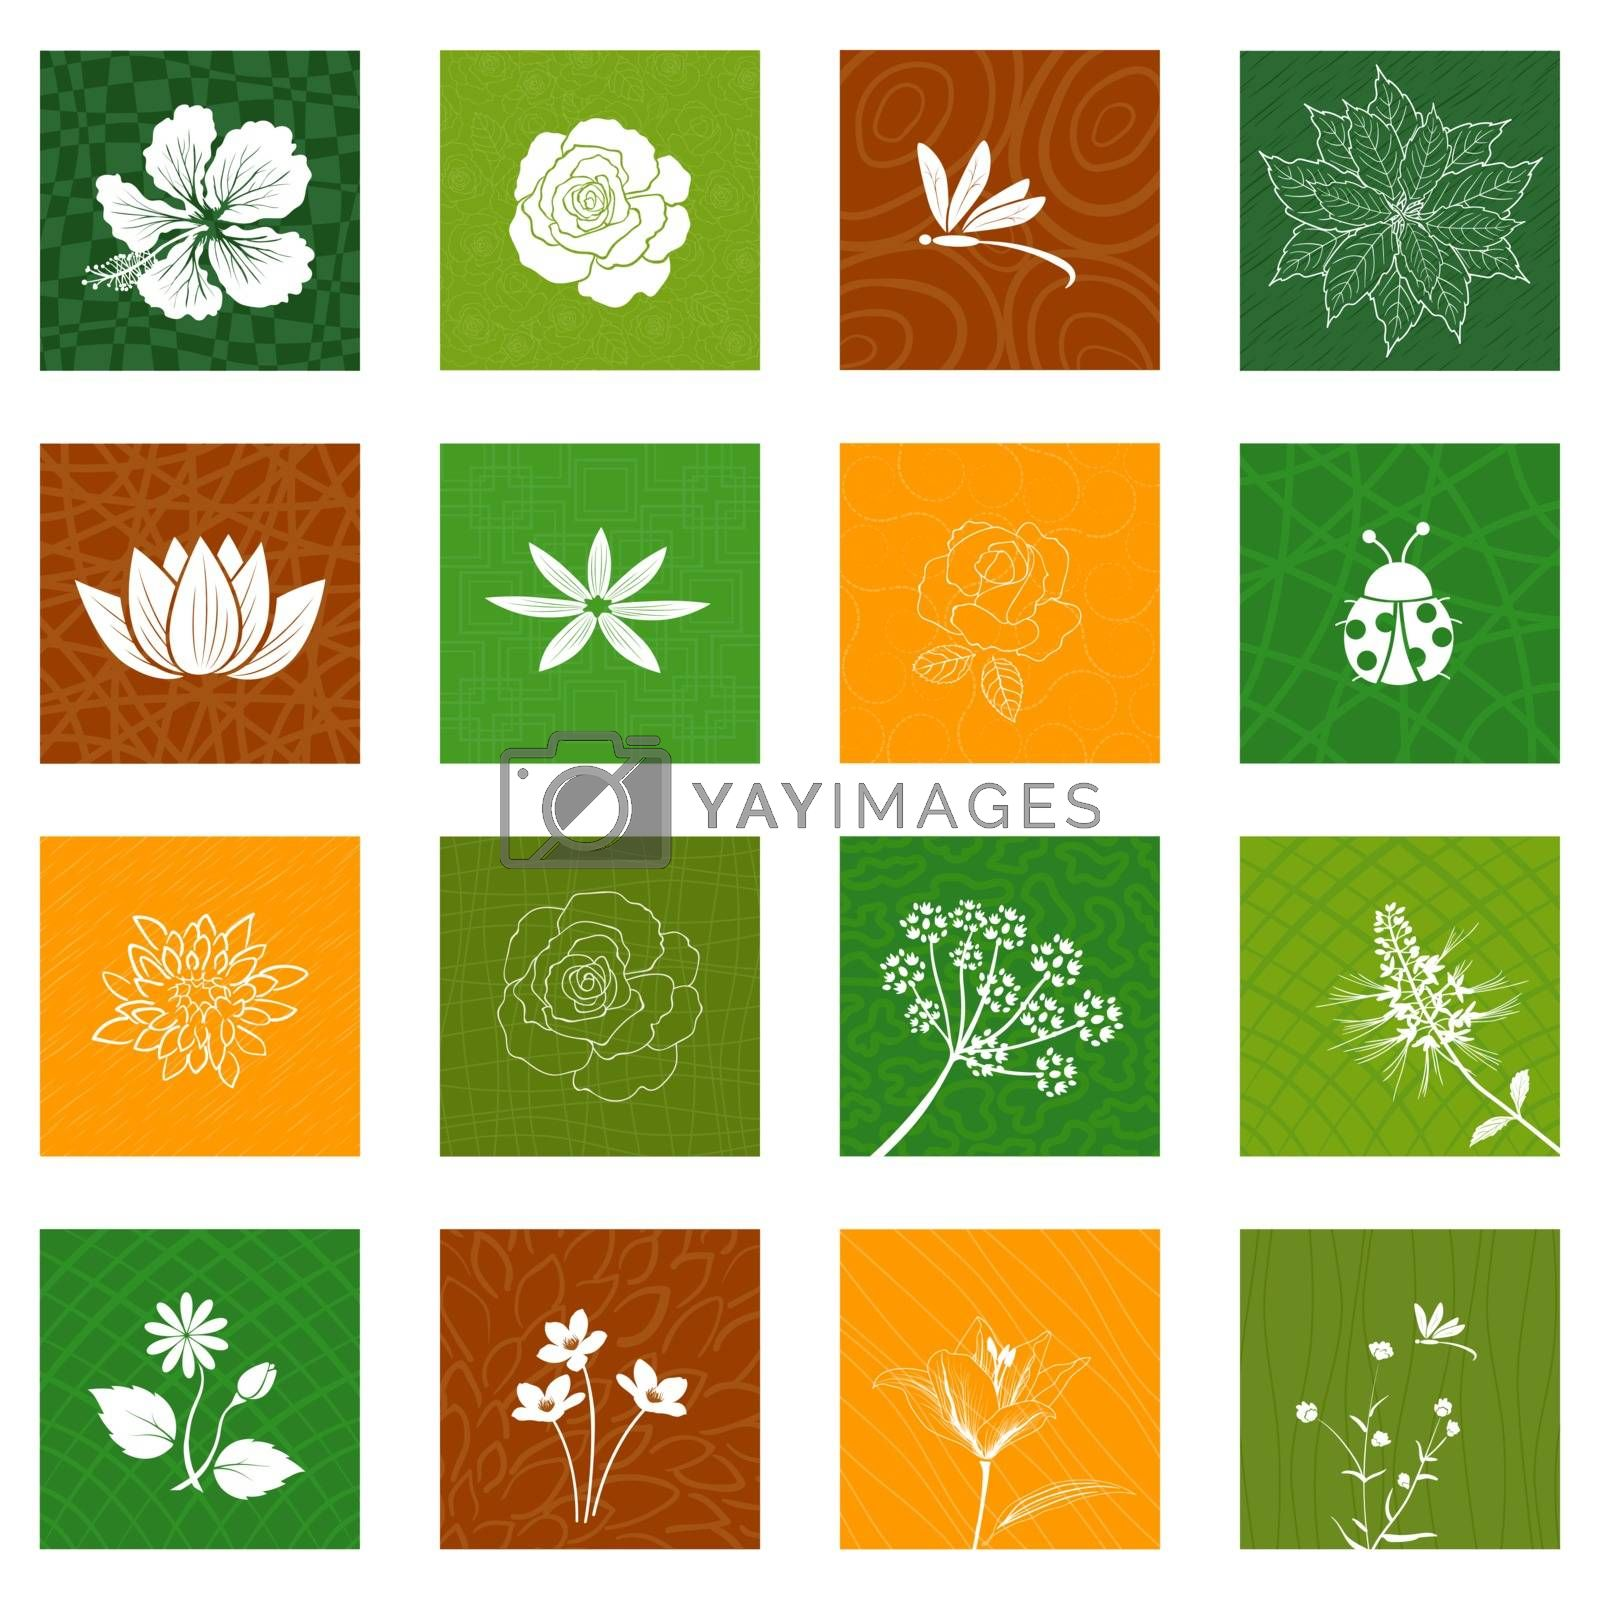 White flowers and leaves icons set isolated on different background for decorative graphic design by PIMPAKA